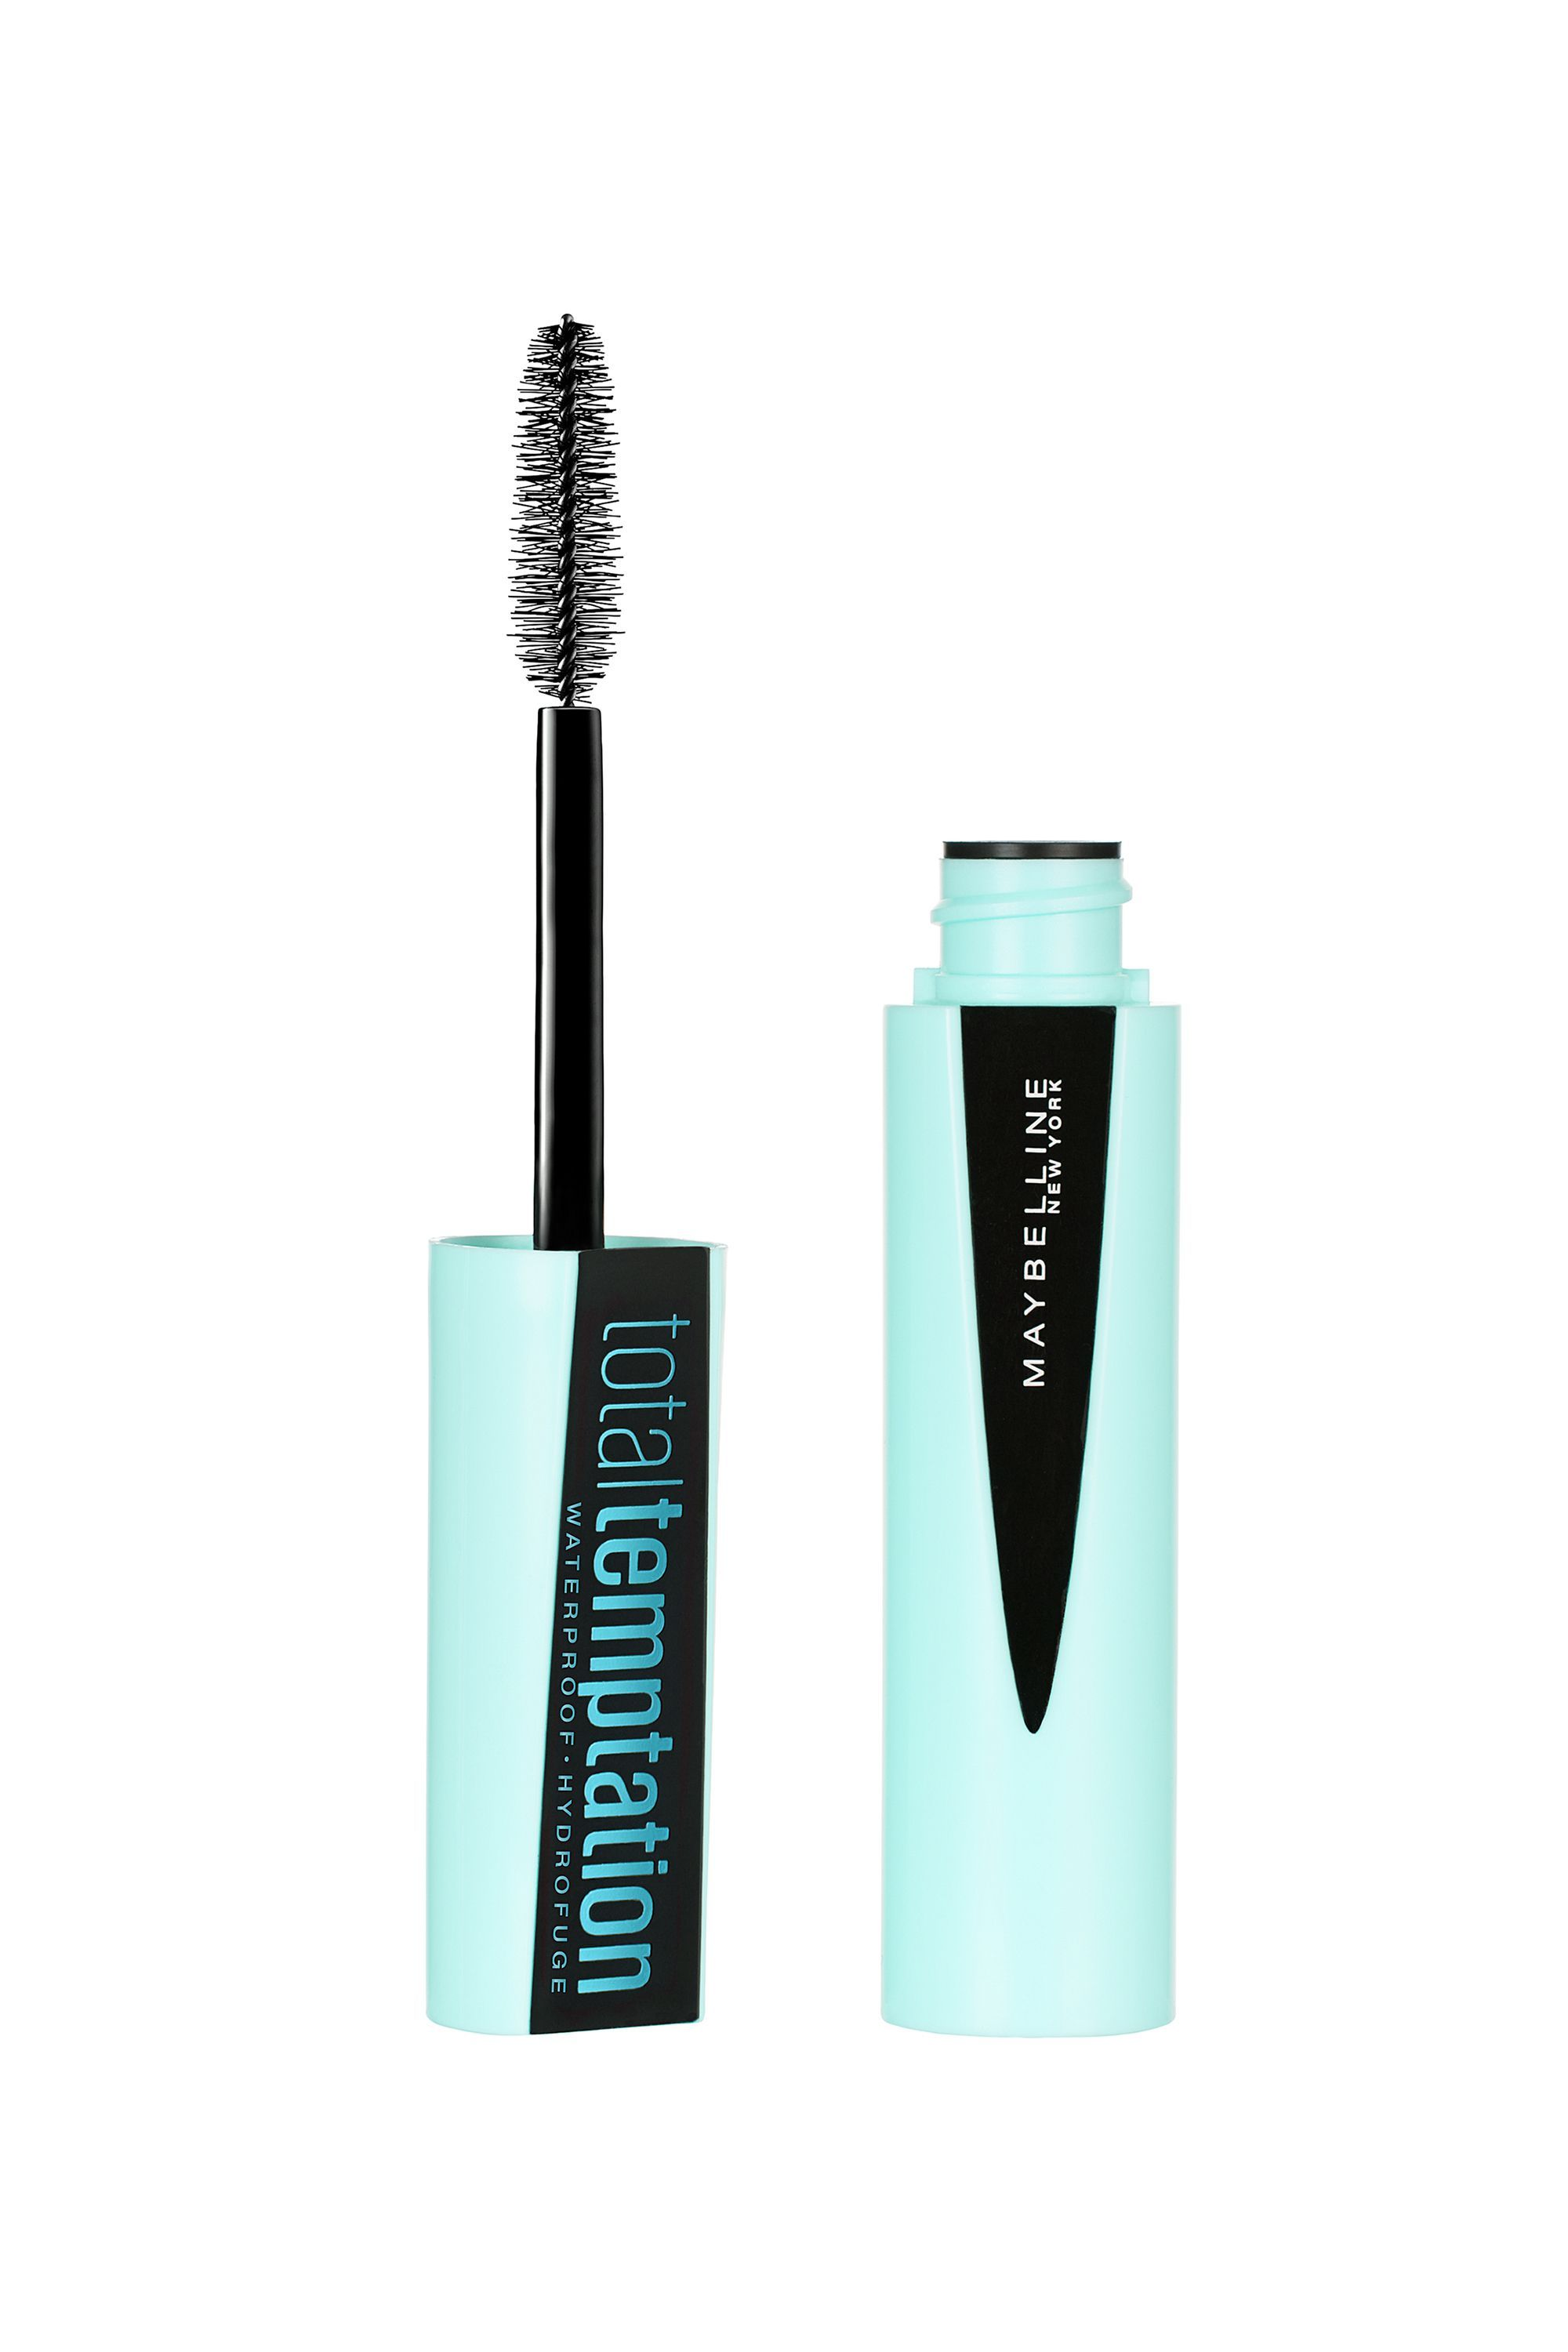 7451b28d2d2 Best Waterproof Mascara of 2019 - 25 Waterproof Mascaras You Can Swim and  Cry In